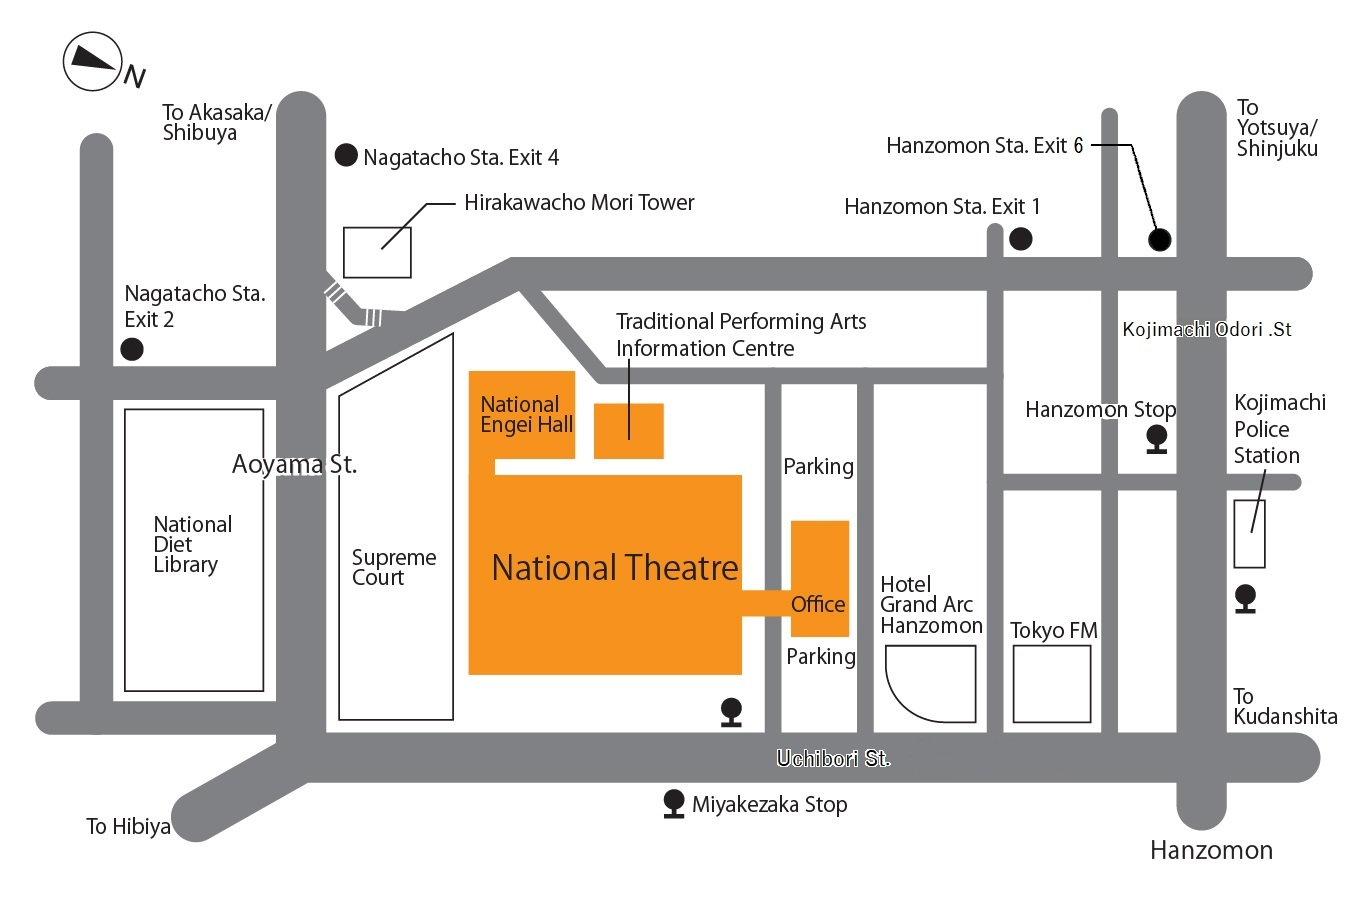 National Theatre(Large Theatre,Small Theatre) | Japan Arts Council